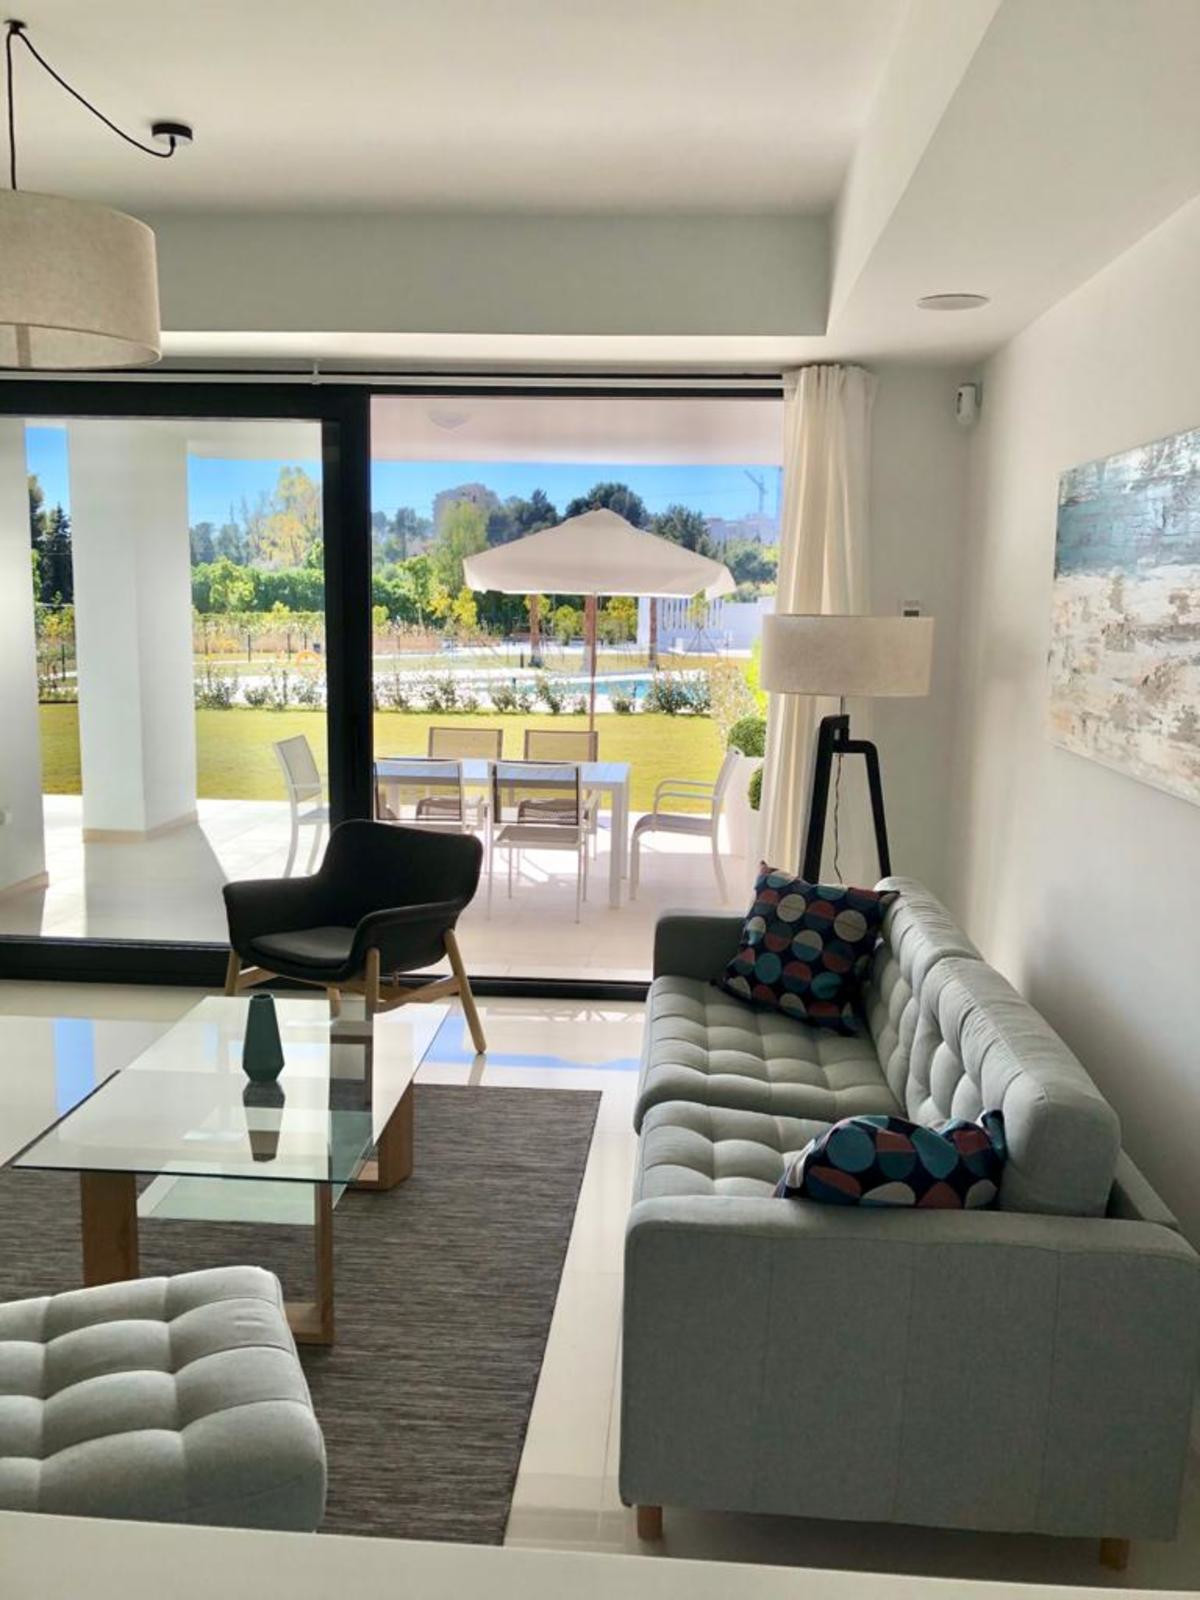 Magnificent apartment for sale, modern design in one of the best areas of Marbella / Estepona, in a ,Spain